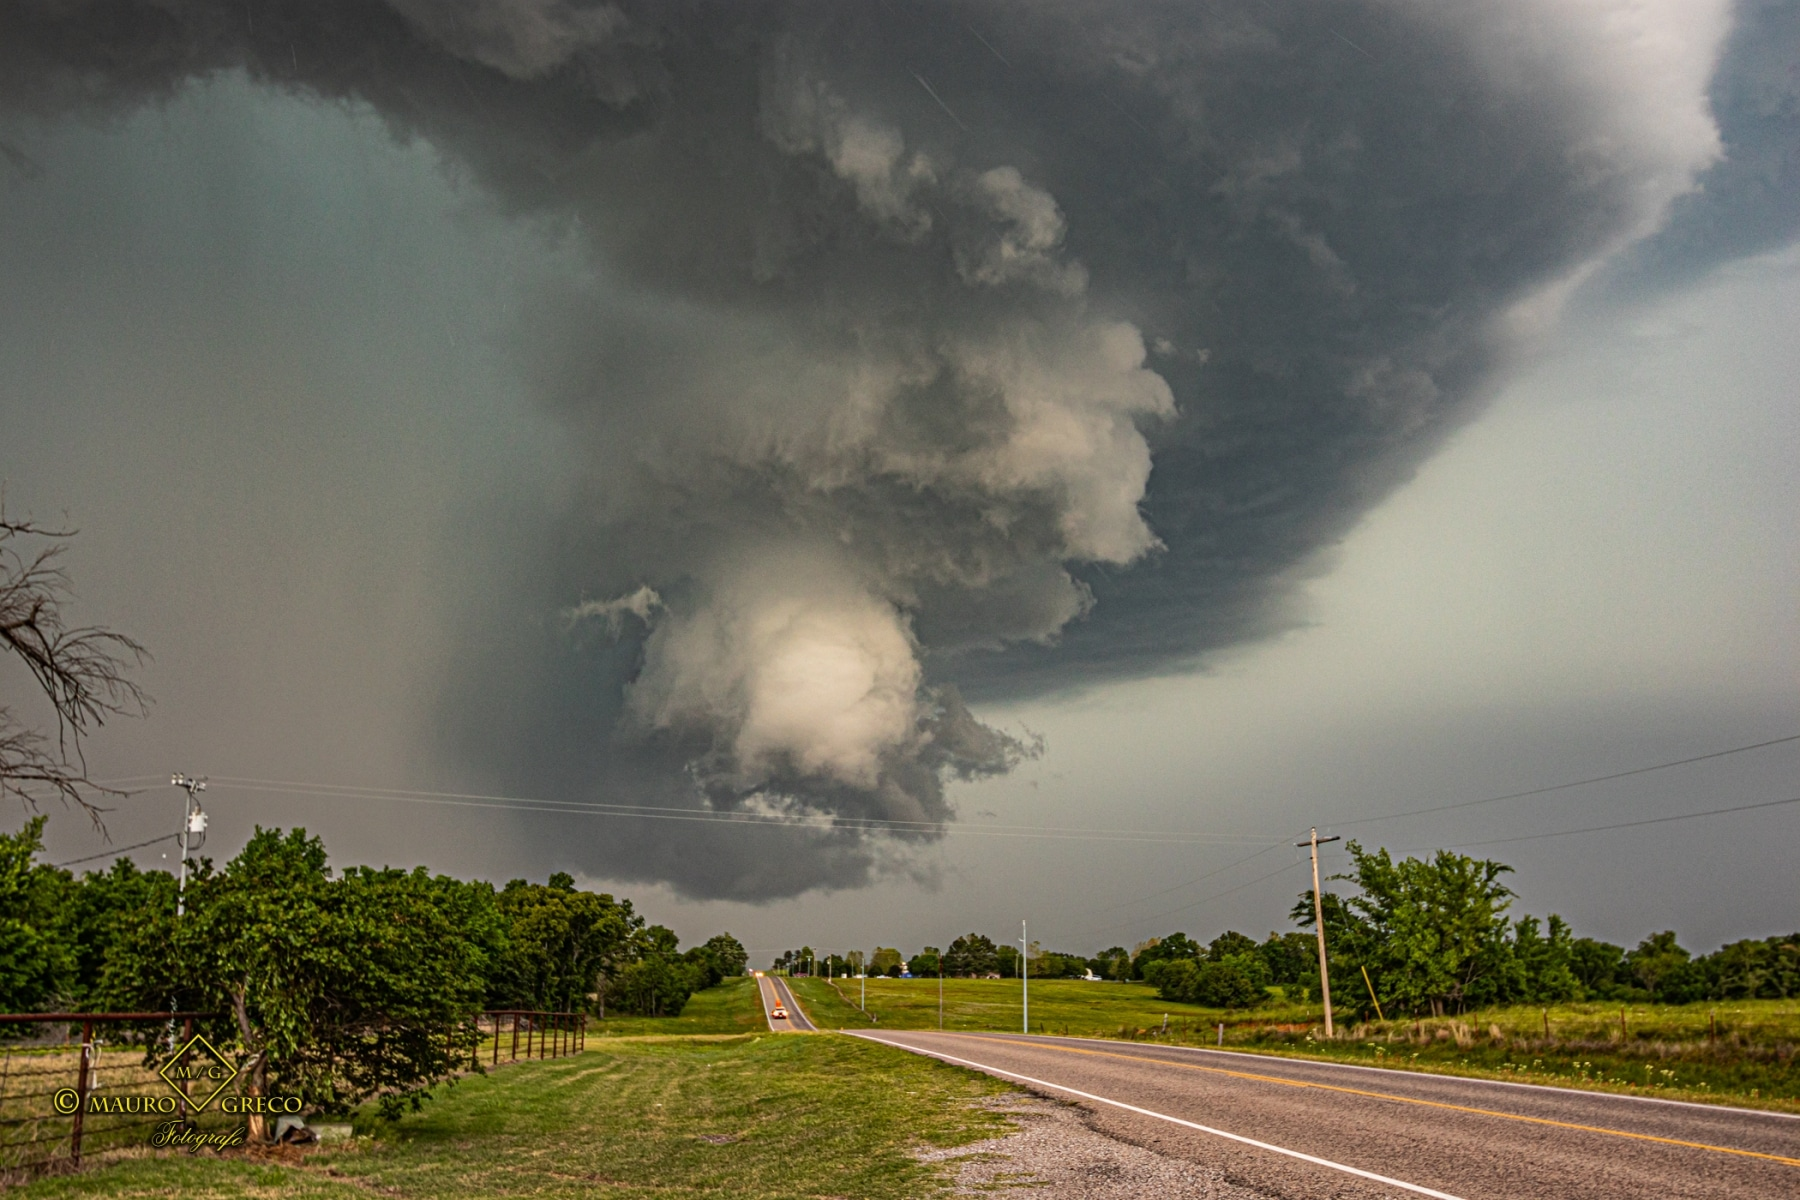 May 4 2020 tornado warned supercell near Rosedale Byars Oklahoma - Tornado Tour StormWind